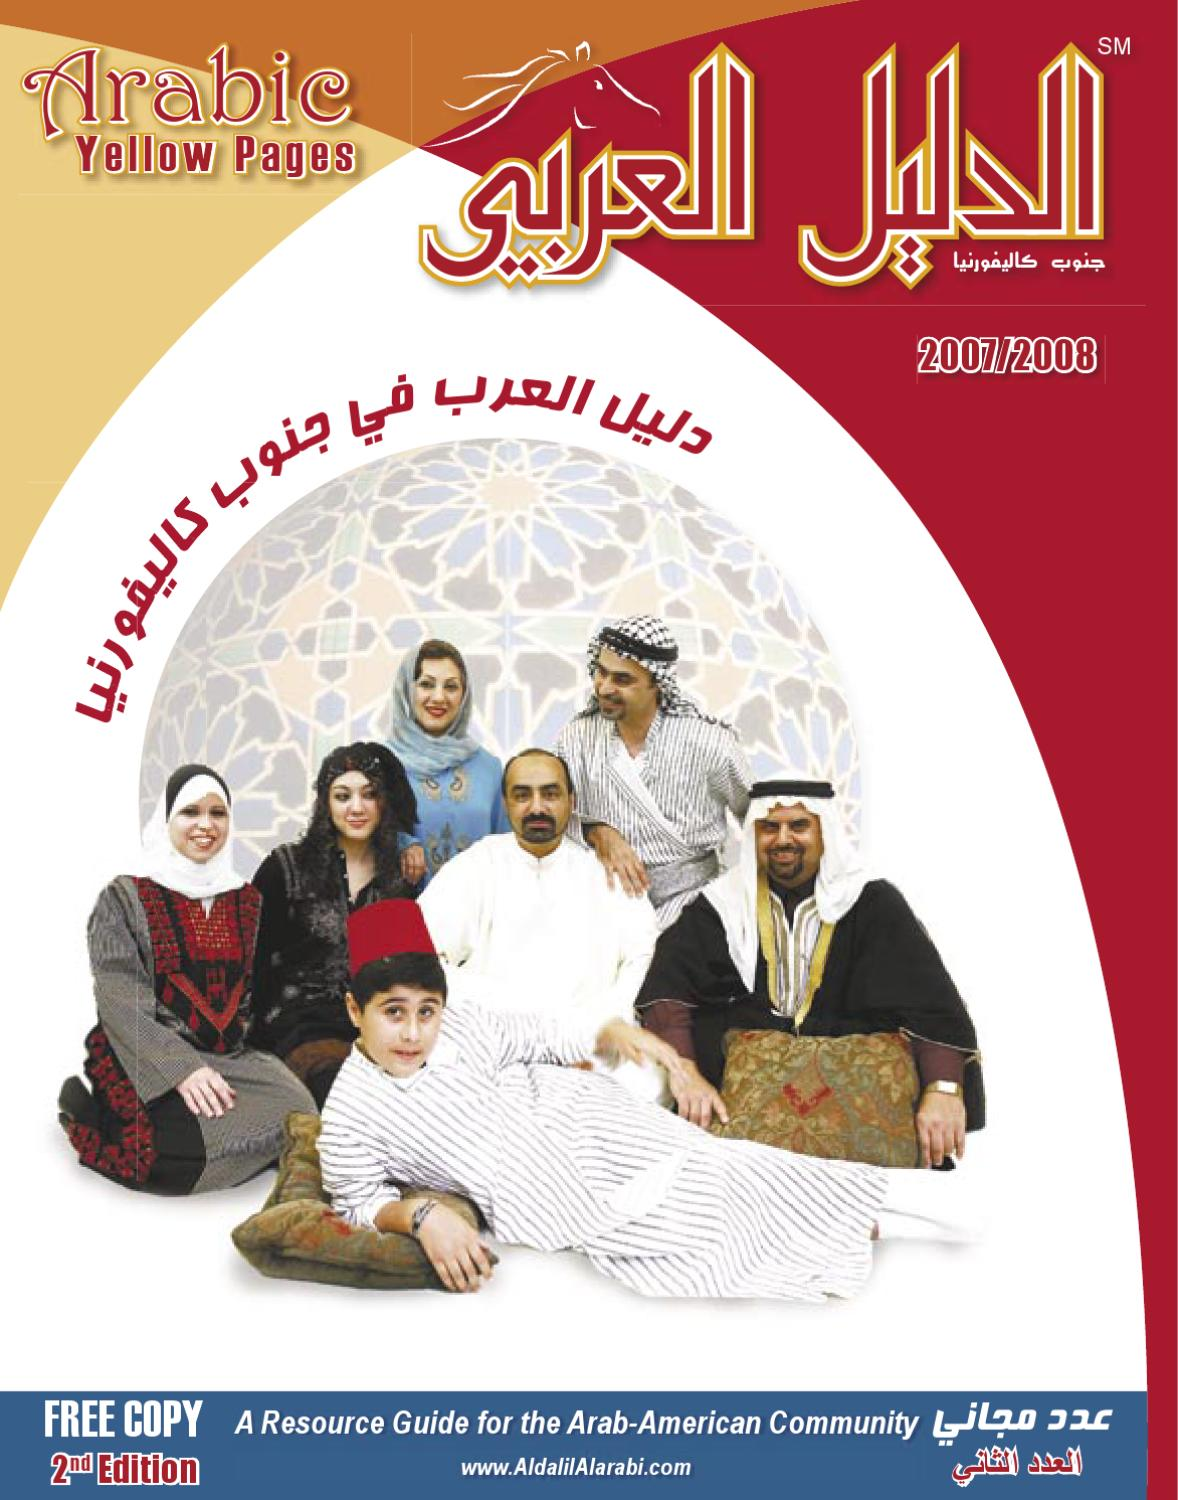 a56f15bbc Arabic Yellow Pages 2007/2008 by Arabesque Media & Breek Media - issuu